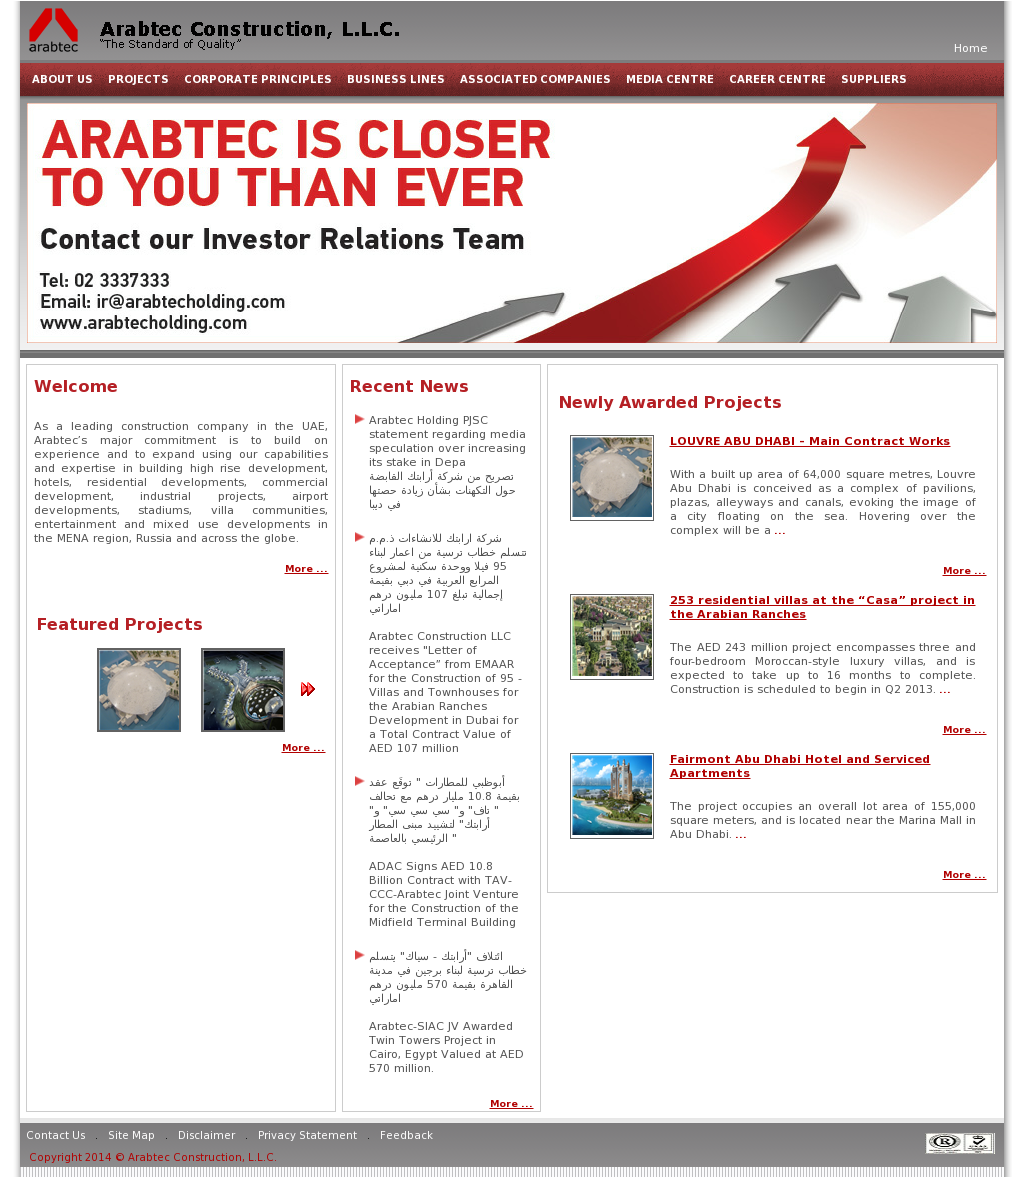 Arabtec Construction Competitors, Revenue and Employees - Owler